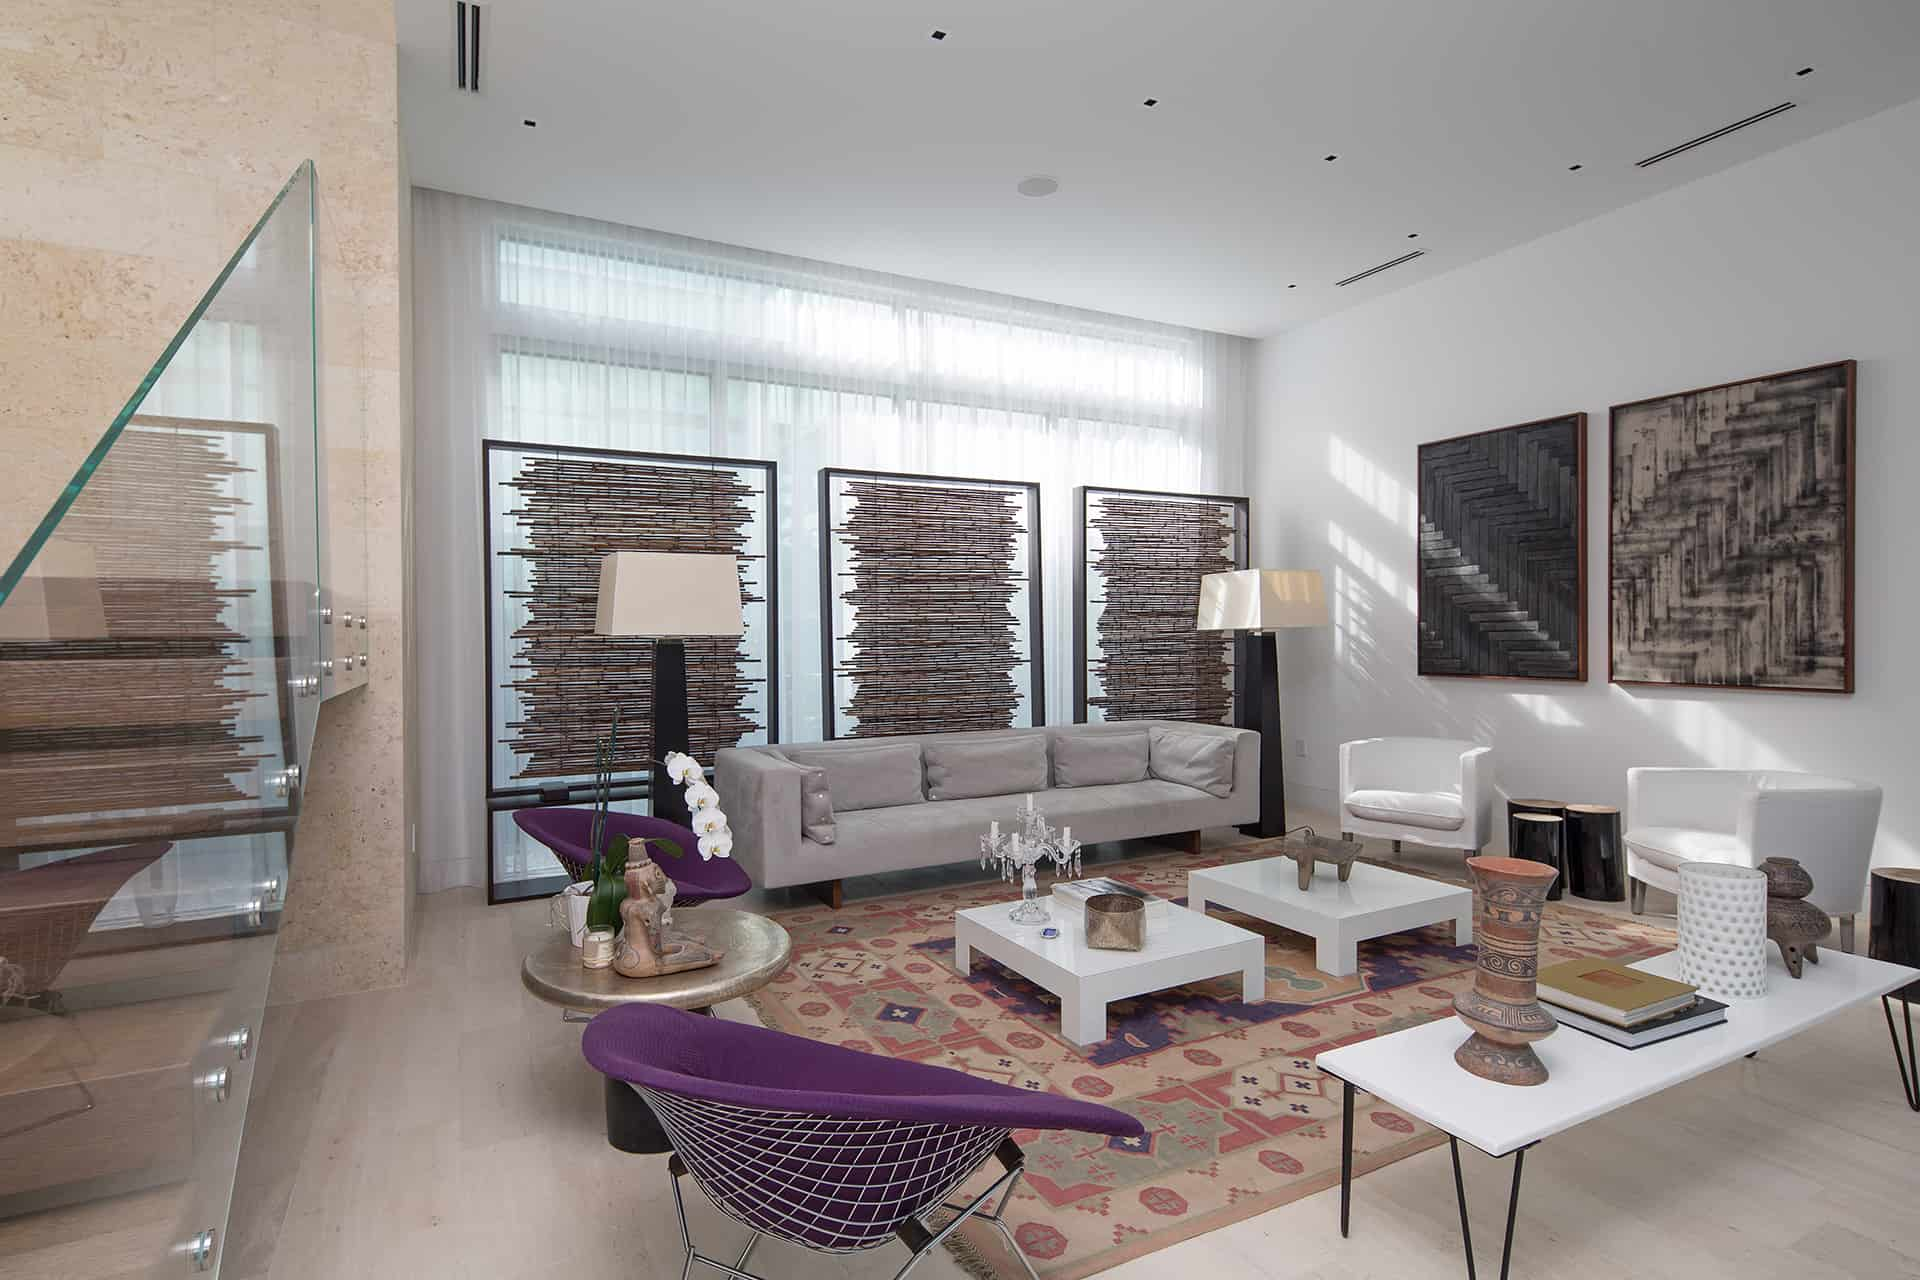 Biscayne Bay Residence-Strang Architecture-08-1 Kindesign